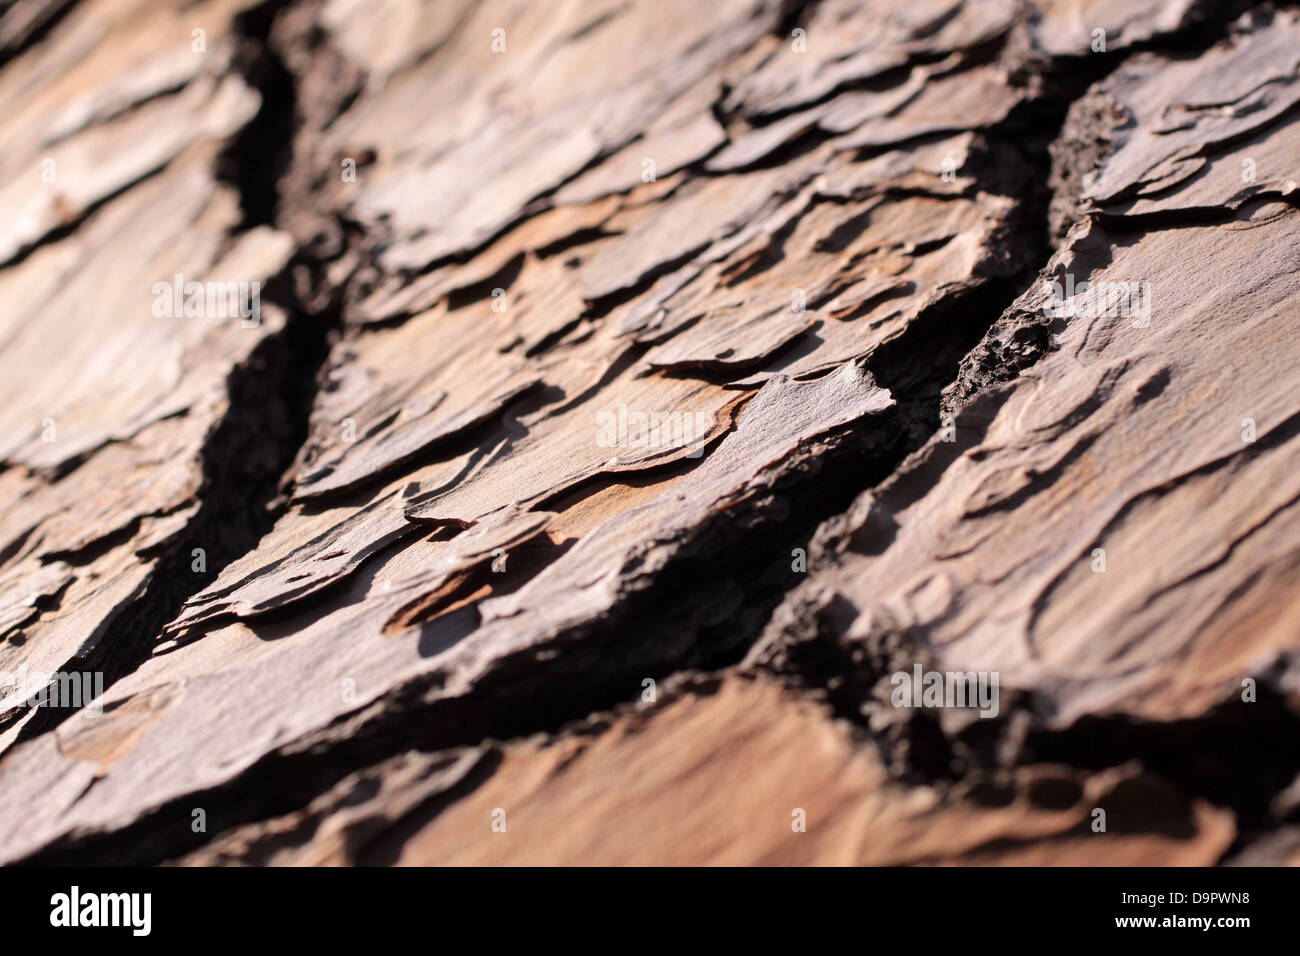 Bark of a pine tree in the Boboli gardens in Florence - Stock Image